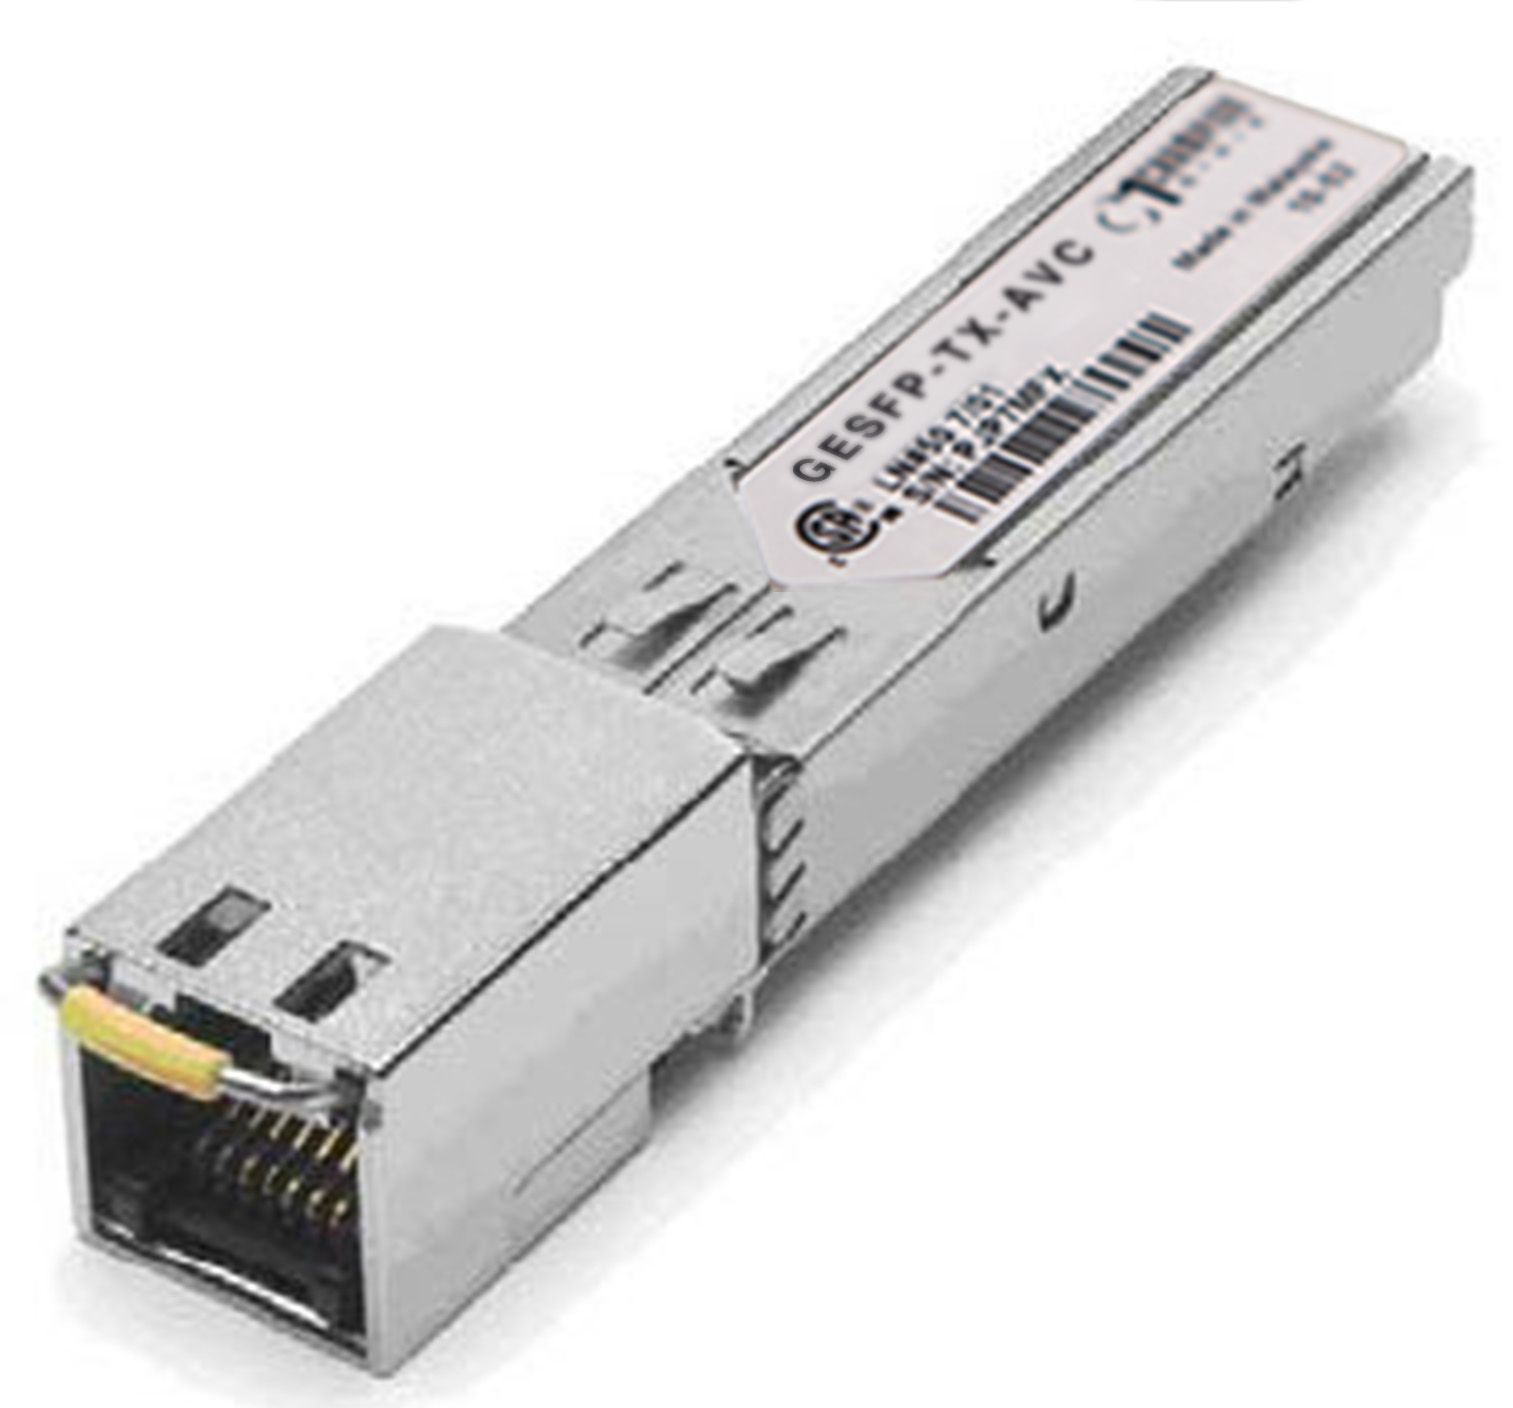 SFP NA 10/100/1000-T 0.1km Transceiver, multi-rate, Avaya compatible 700283872